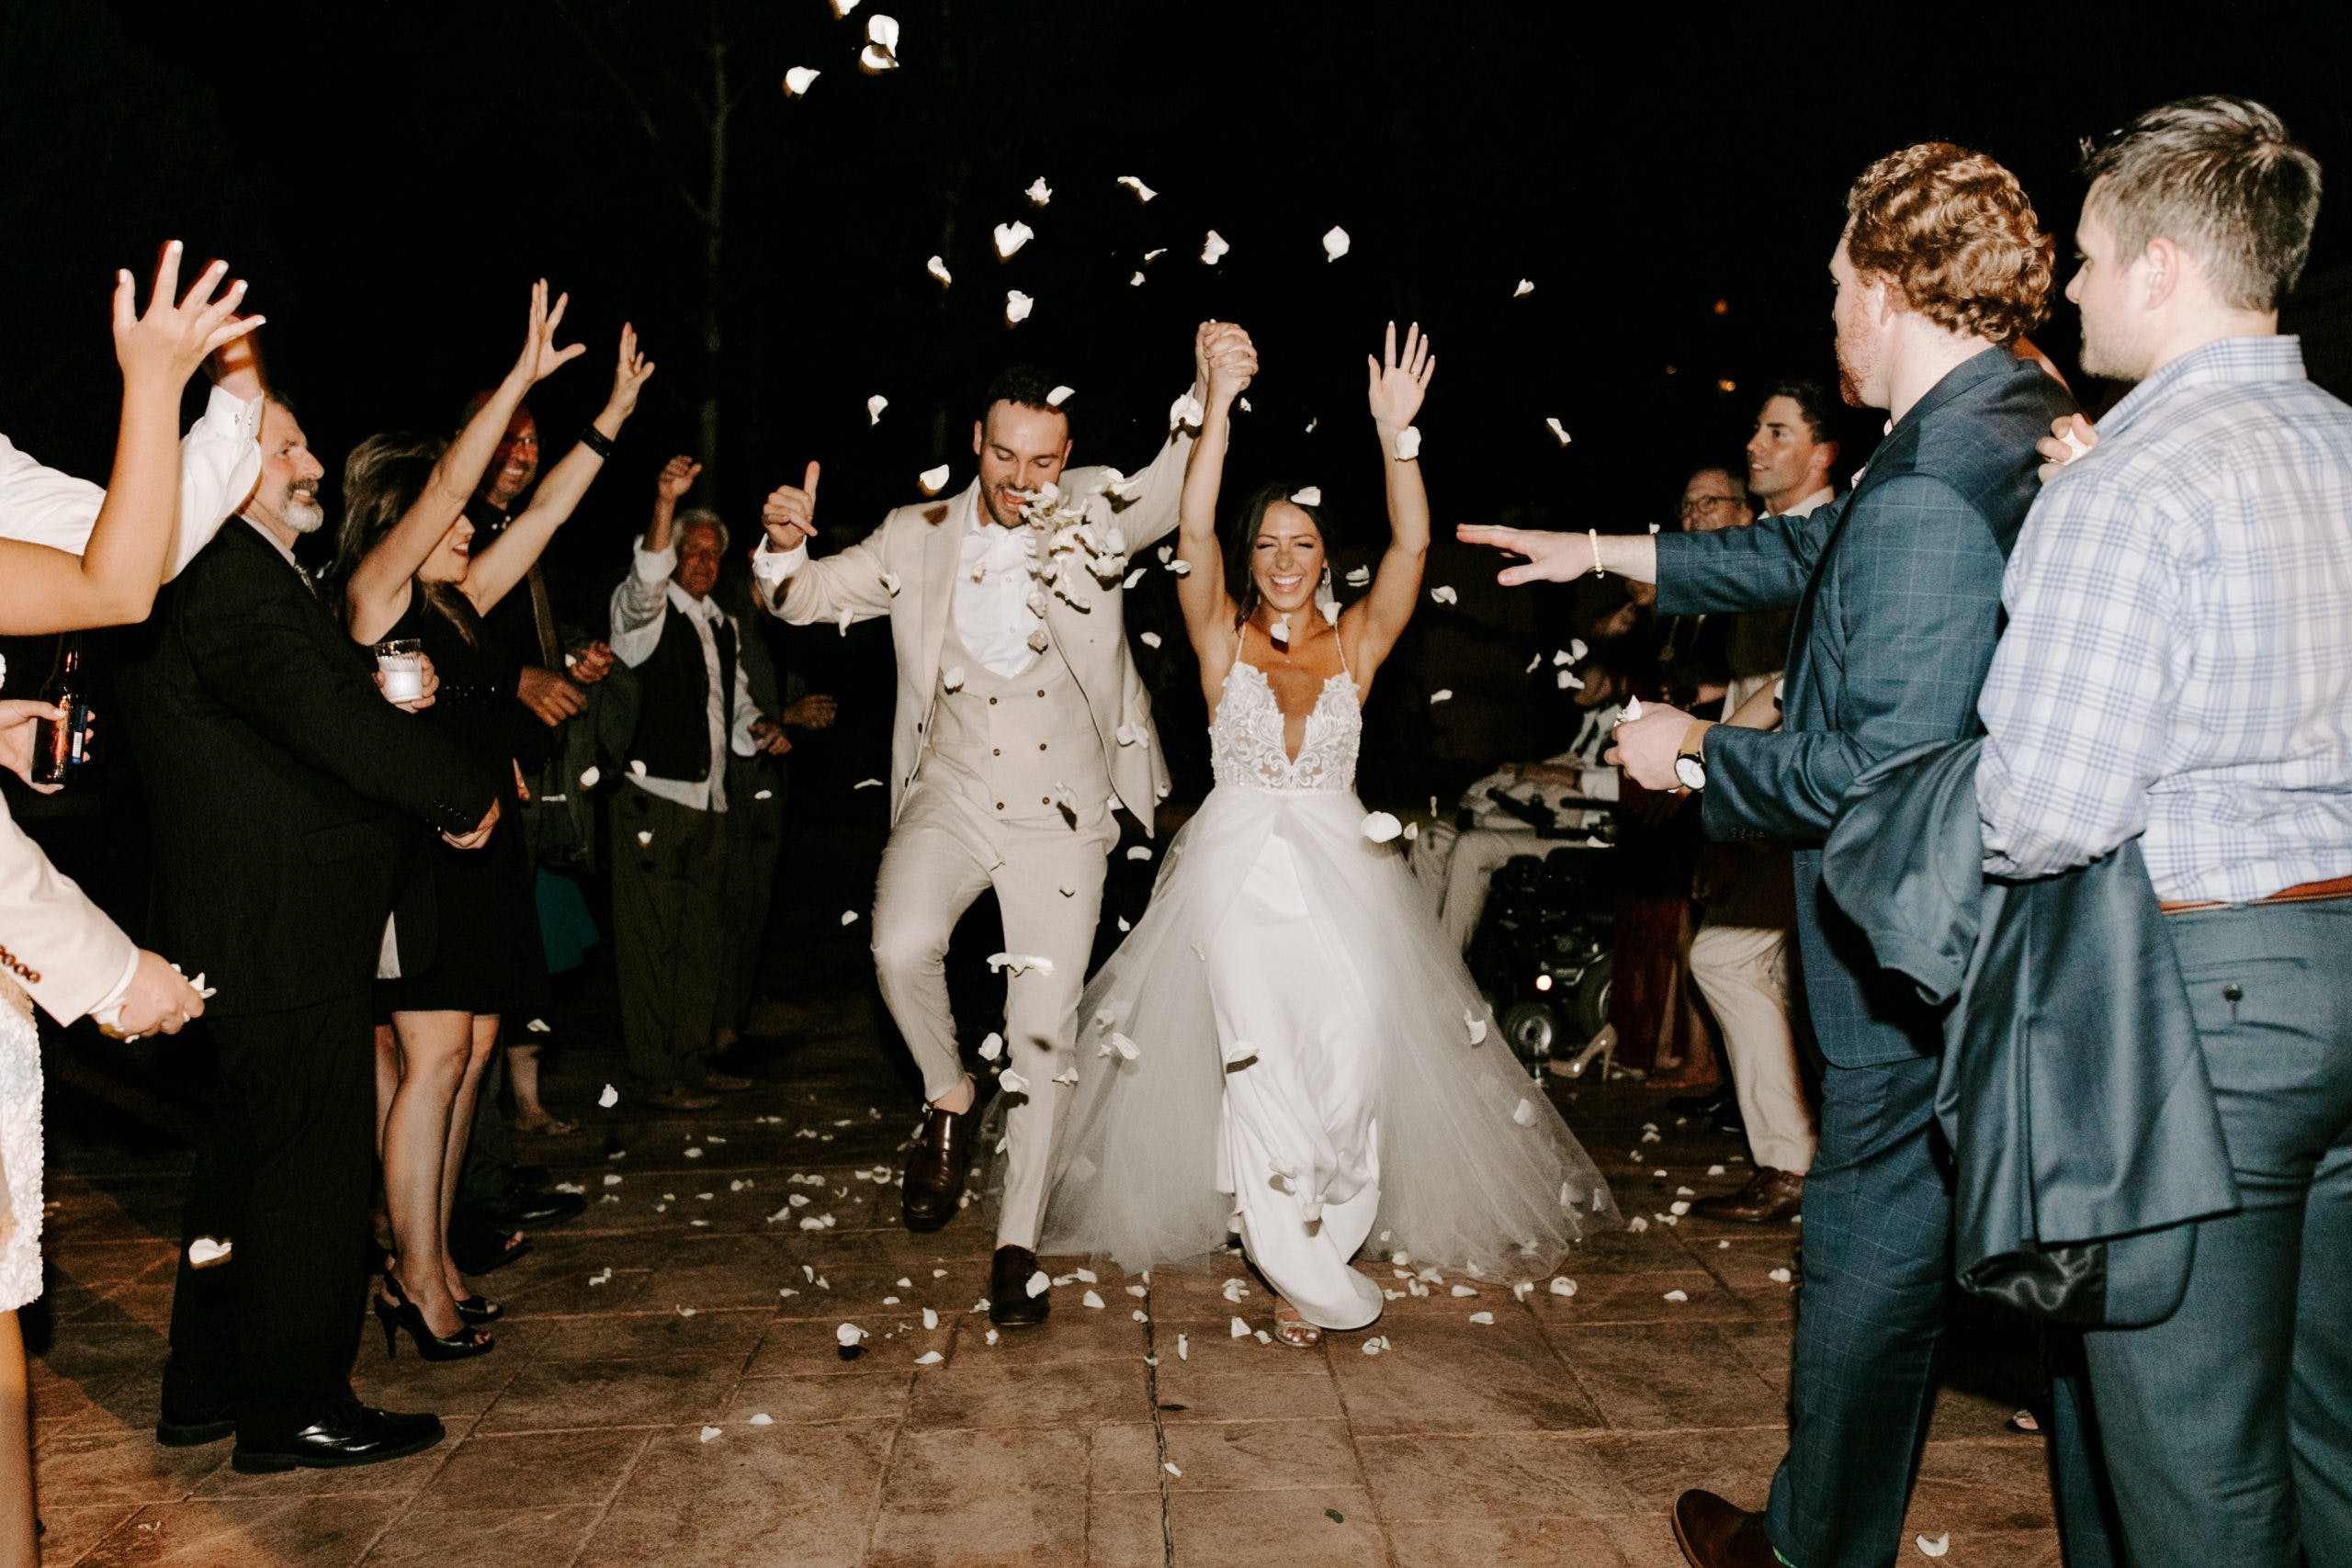 Guest throwing confetti at bride groom during reception   PartySlate